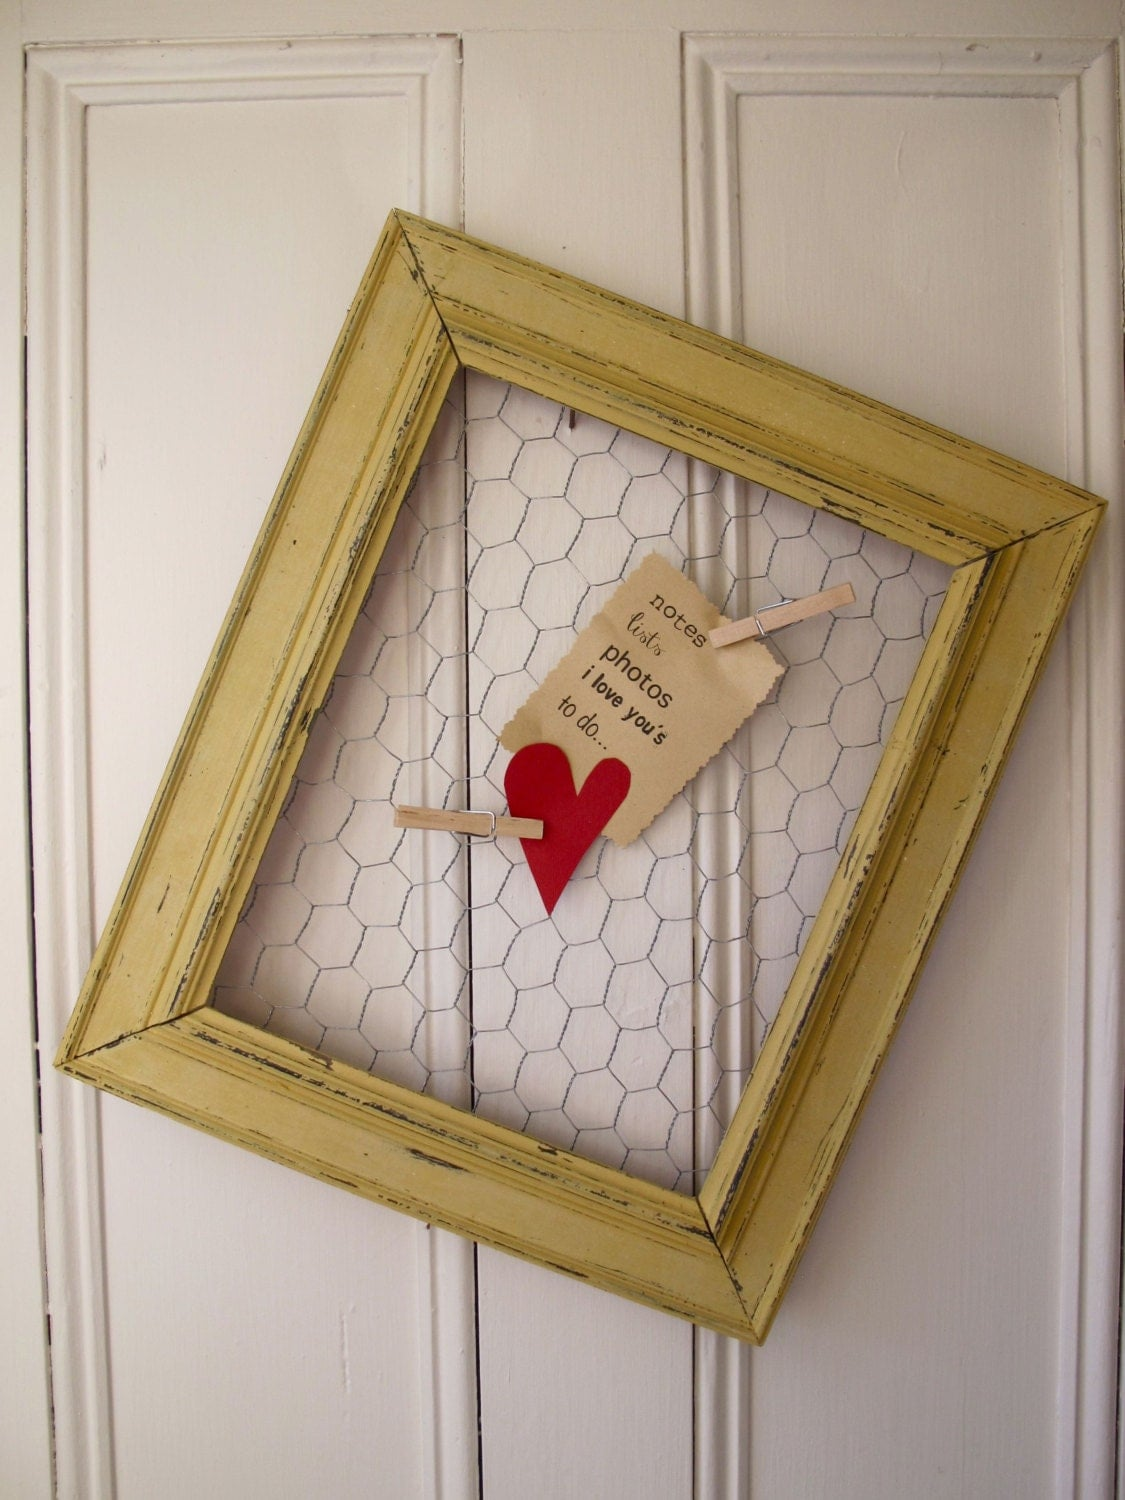 Recycled Frame, Chicken Wire, Wall Organizer, Message Memo Board, Hand Made, Hand Painted, Mustard Seed Yellow